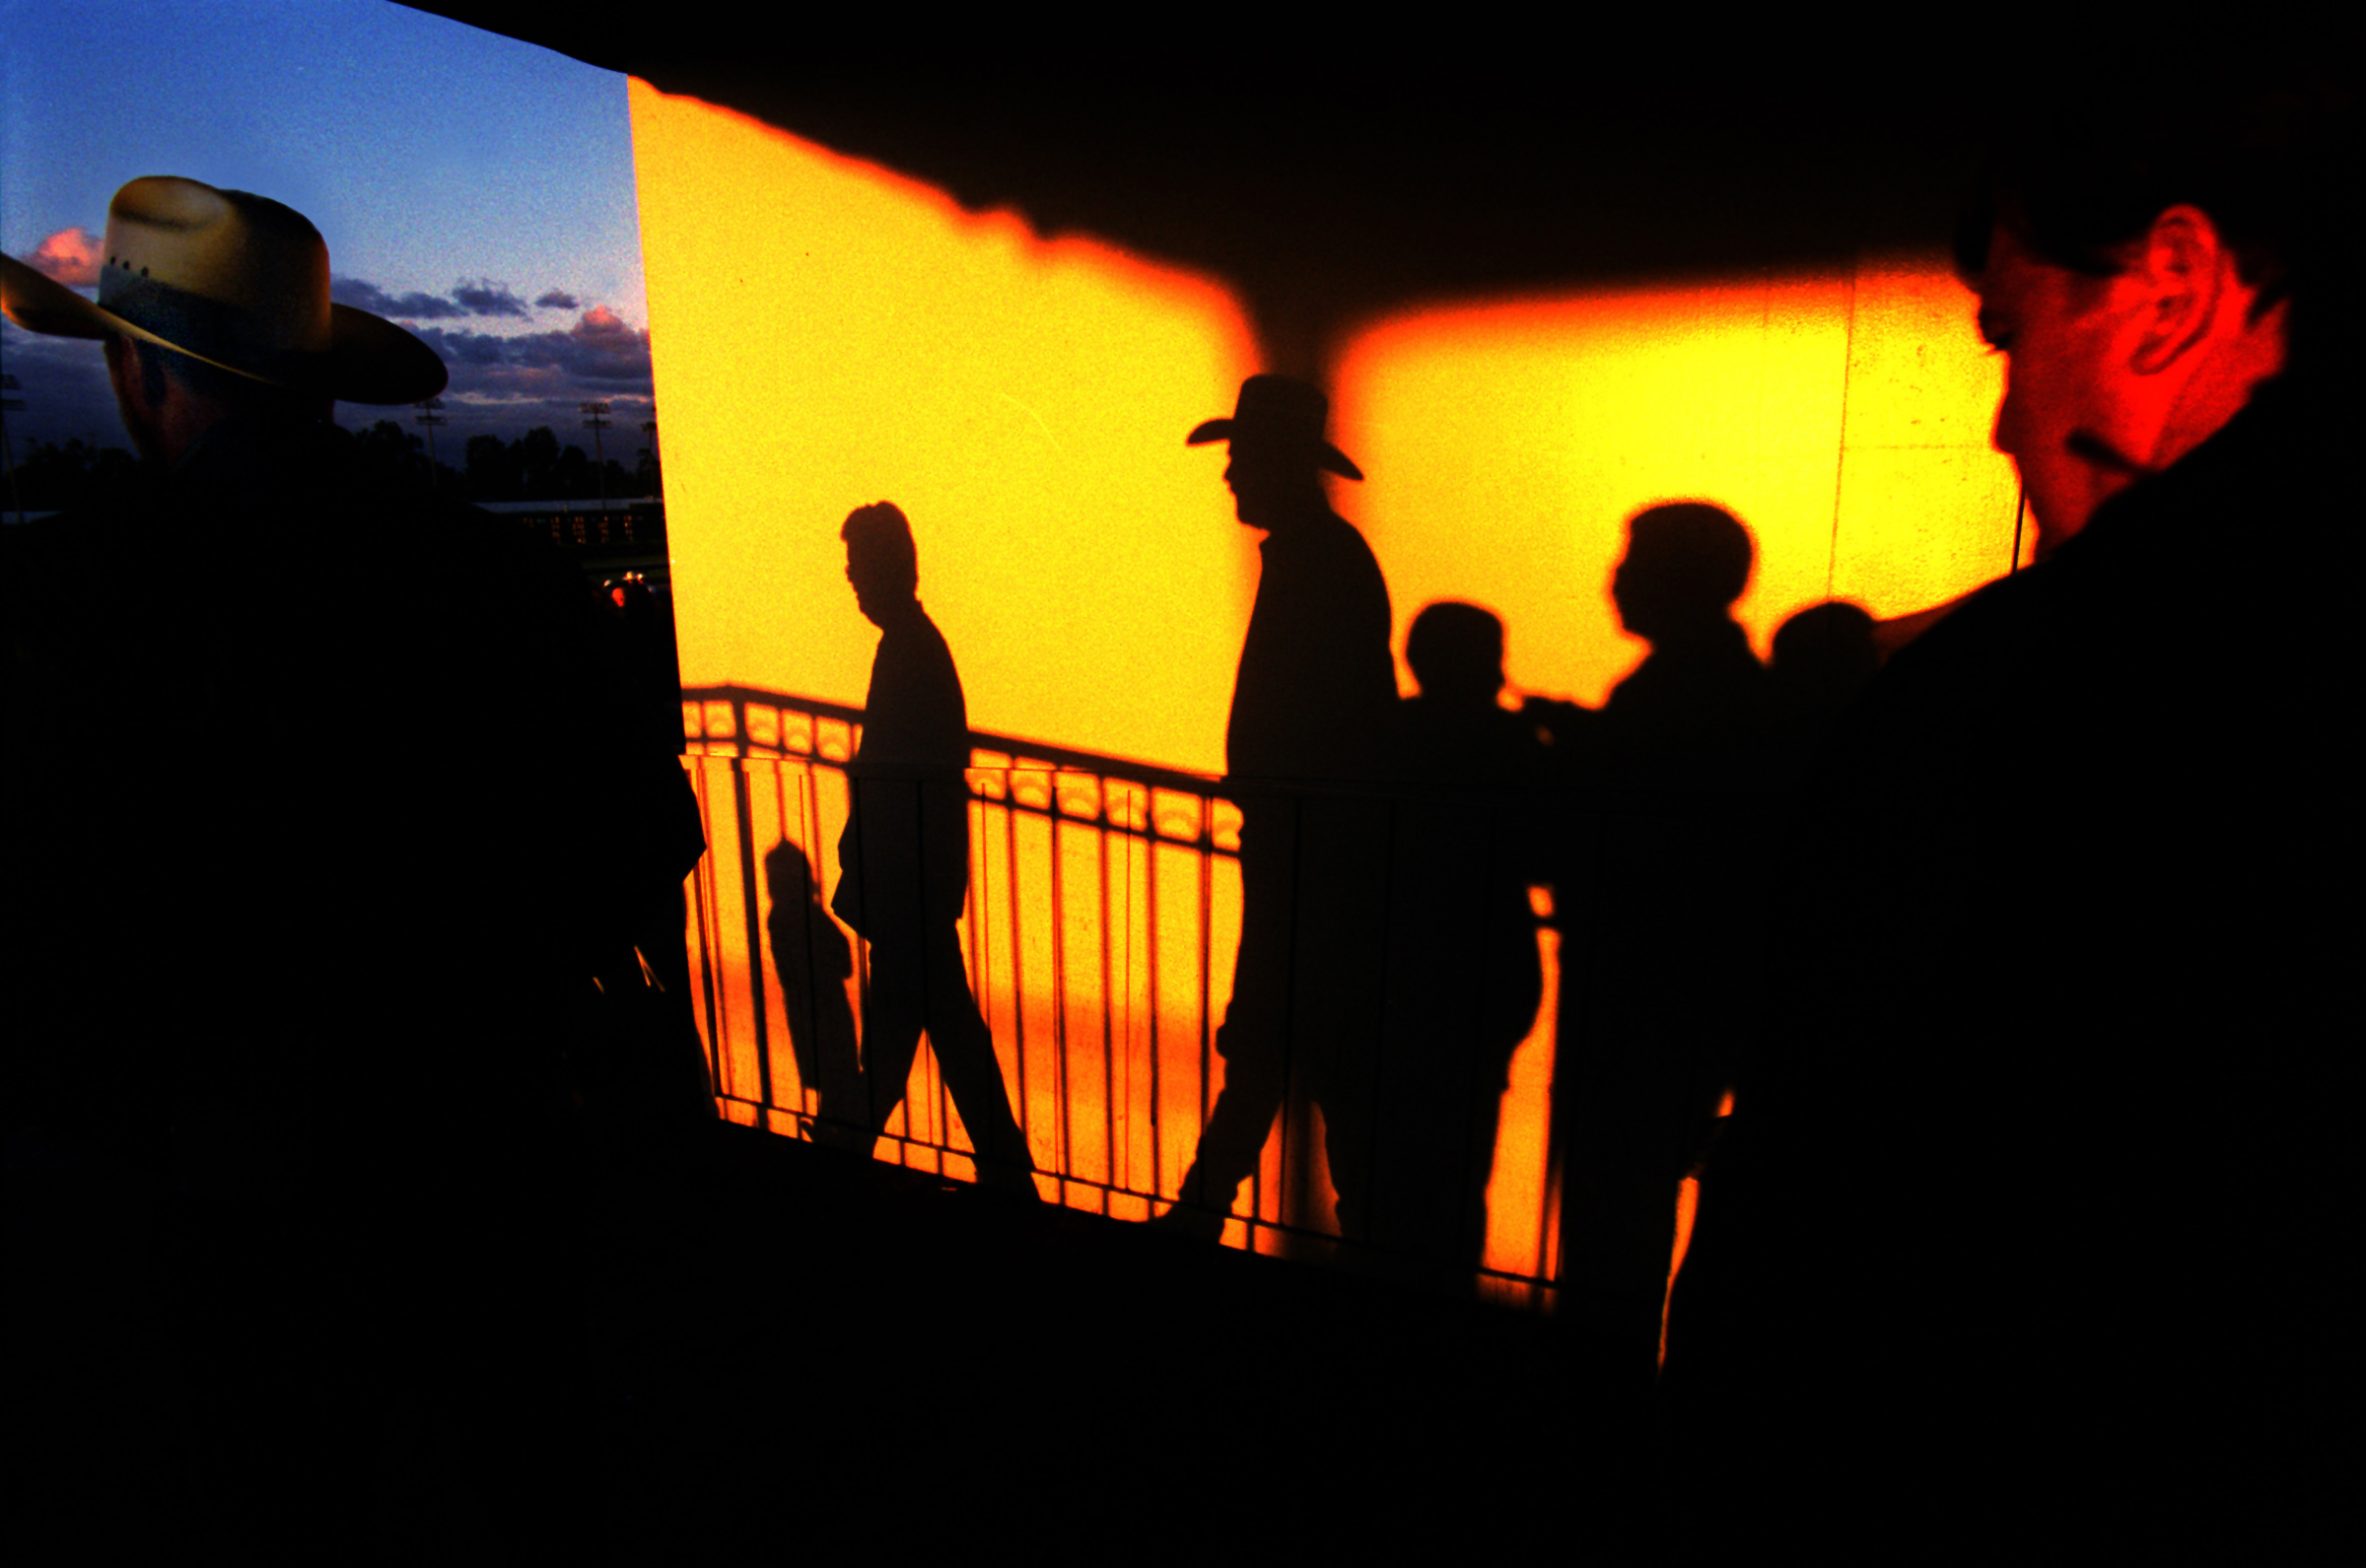 Race fans from all walks of life - some sporting cowboy hats - are caputred as their shadows splash on a wall as the late afternoon sun sets before the first Friday night post at Los Alamitos race track, recently in Los Alamitos.